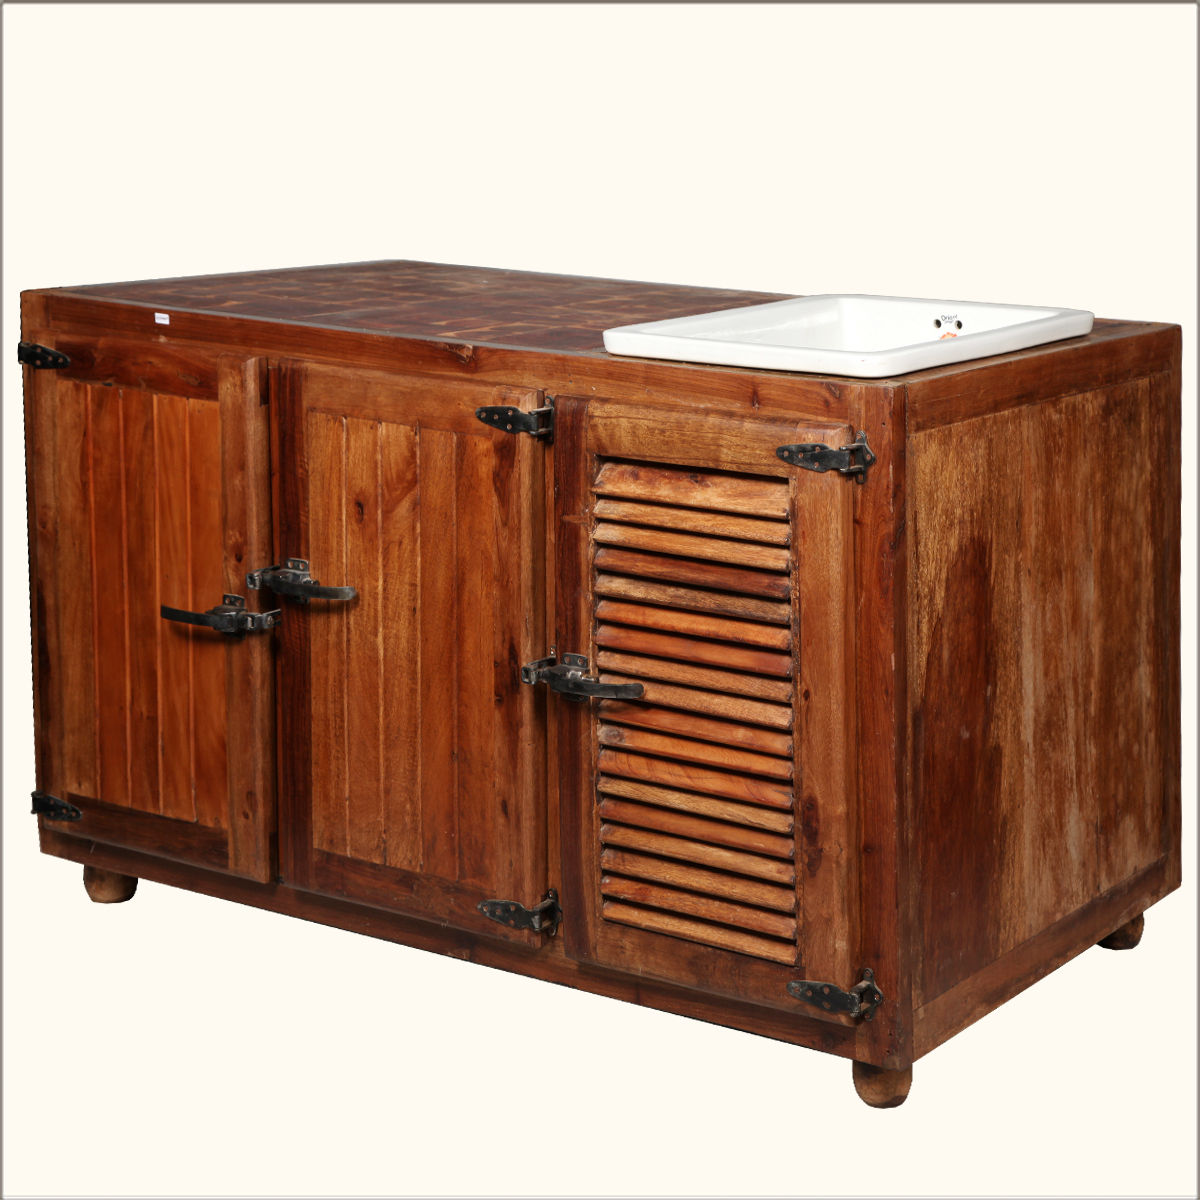 teak wood butcher style top storage cabinet kitchen cart counter island table ebay. Black Bedroom Furniture Sets. Home Design Ideas